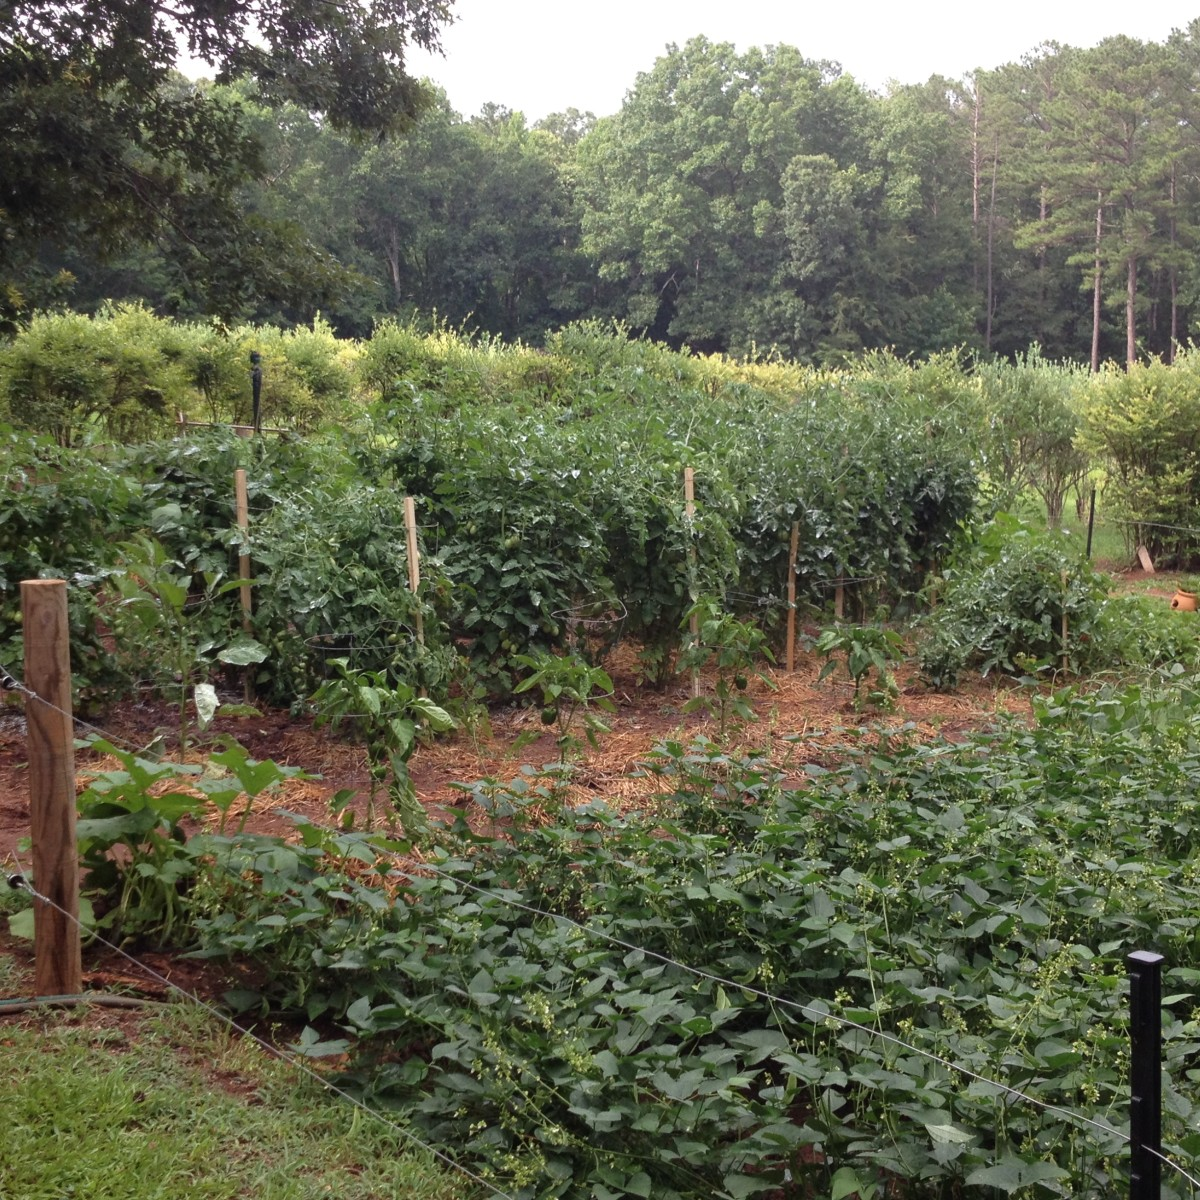 Thanksgiving Dinner: Preparing for That Special Meal While Summer Gardening